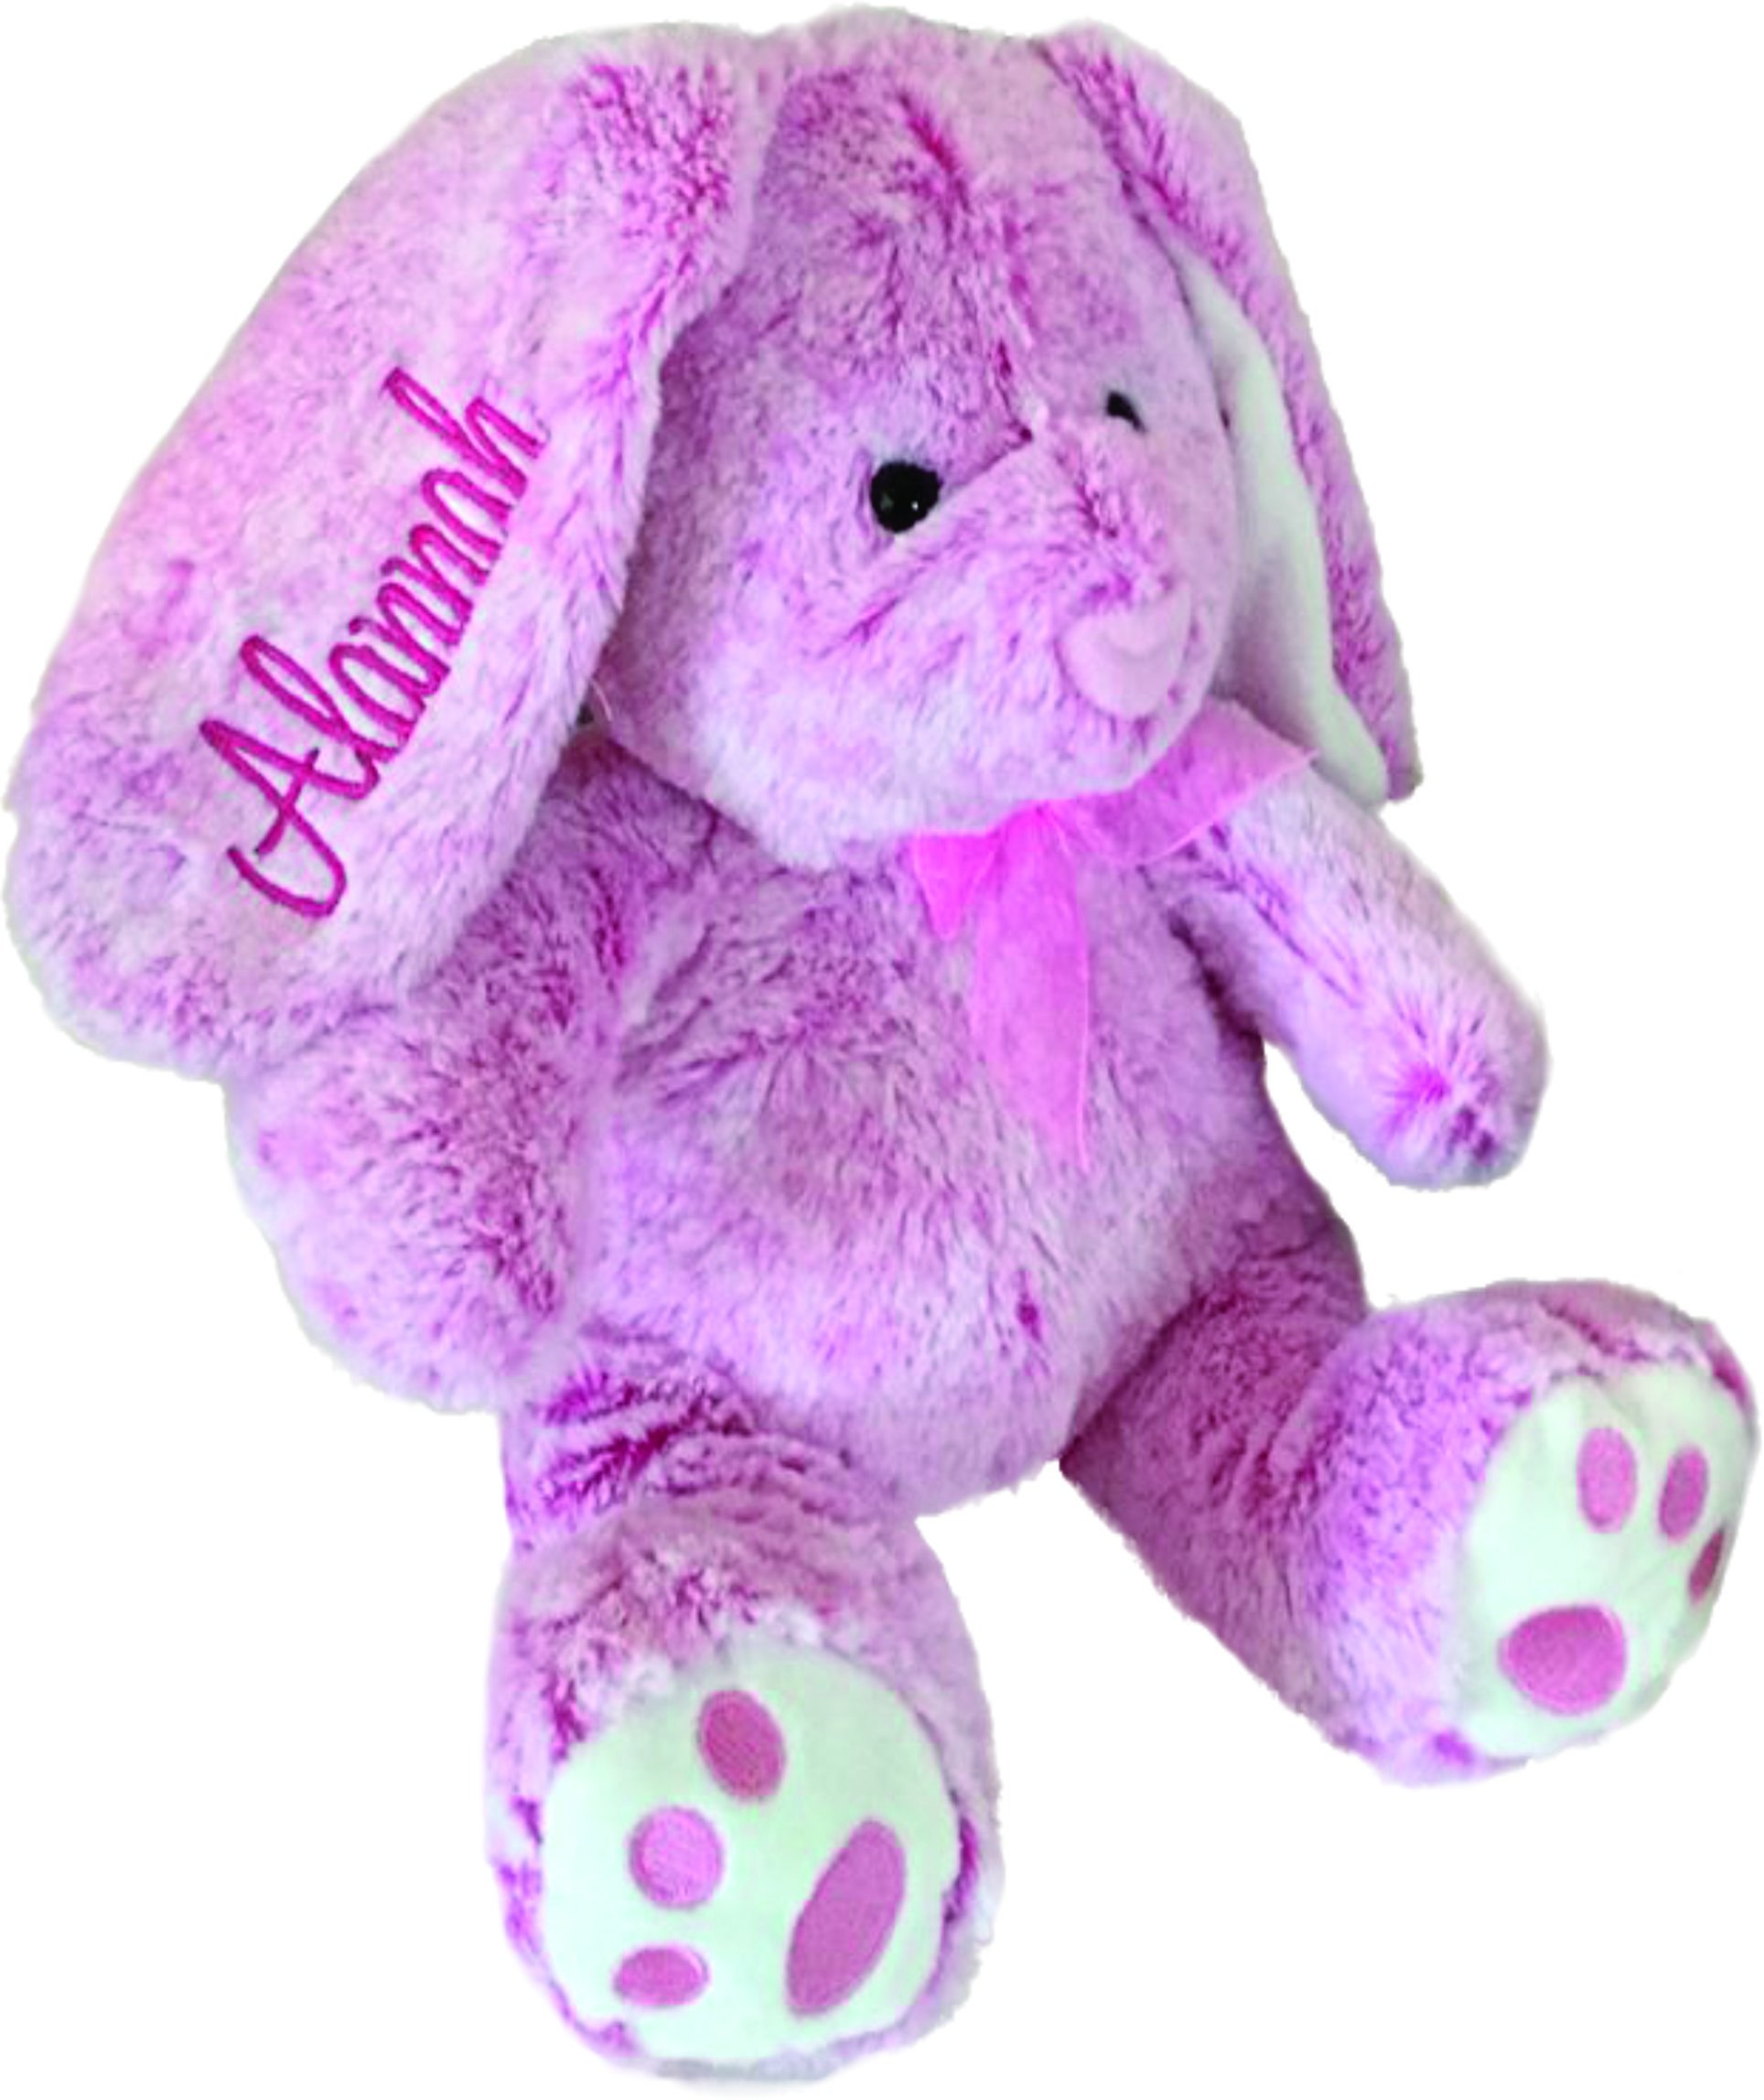 Personalized Plush Bunny-14 inches Tall- Stuffed Animal-Easter or Gift (Pink) by Hug Fun